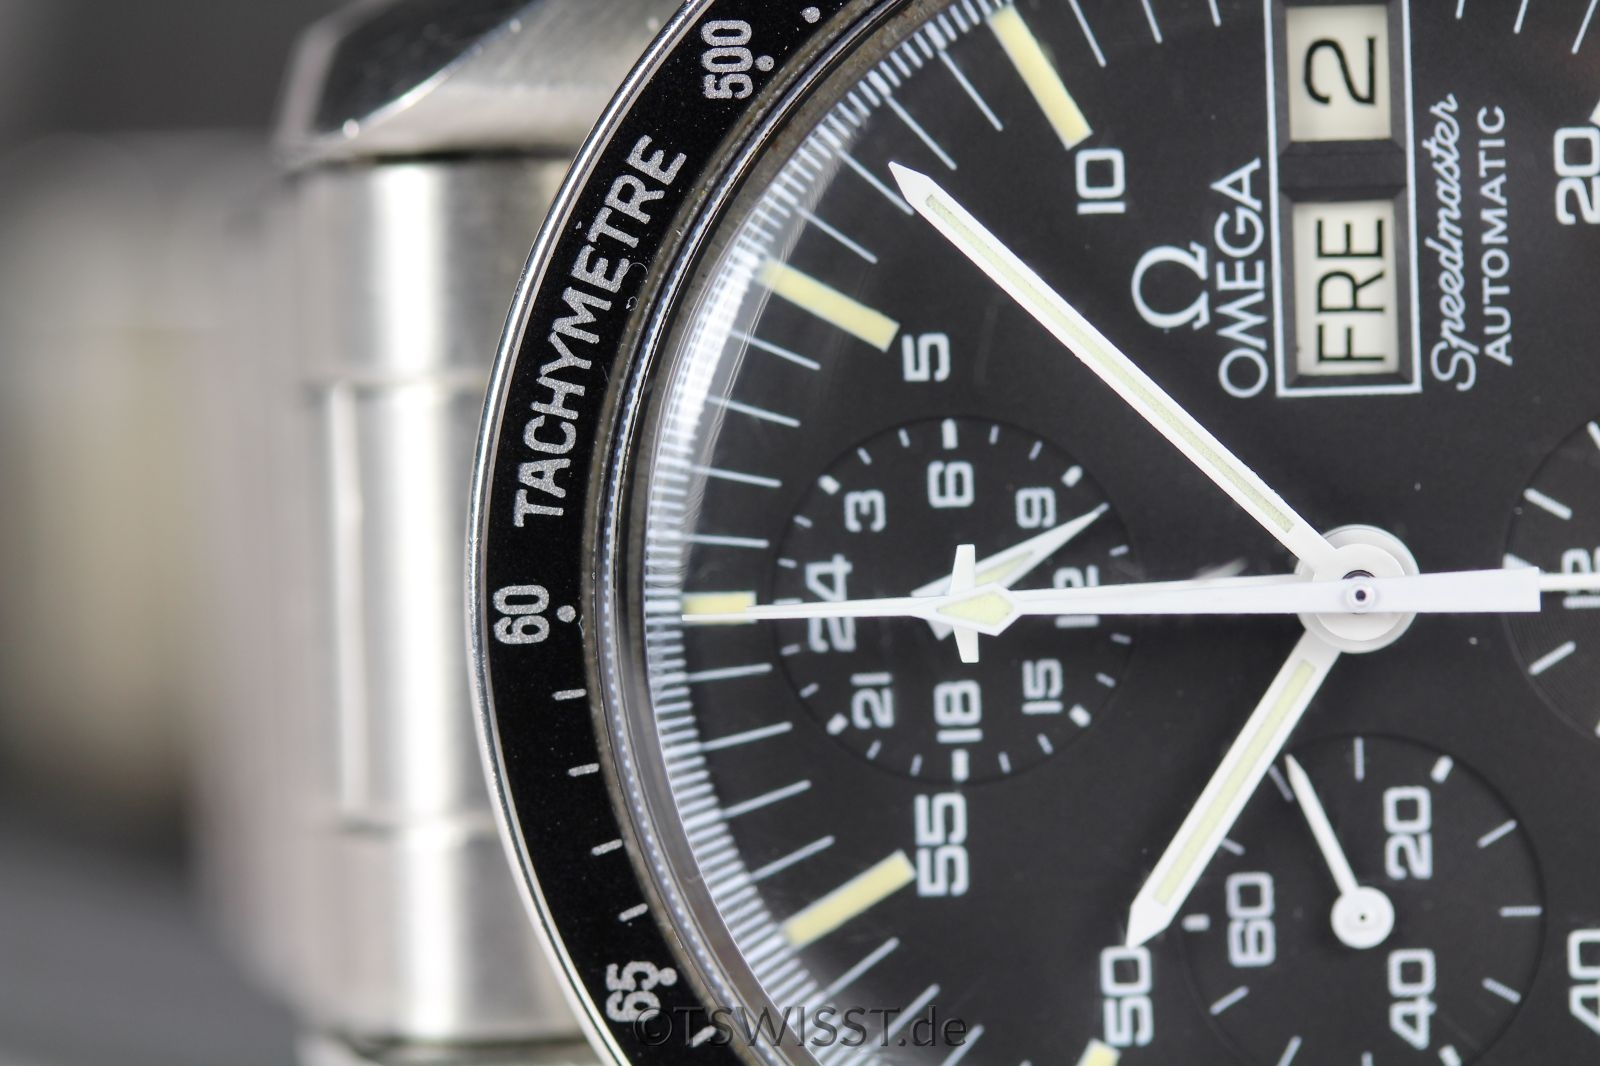 Omega Speedmaster Holy Grail full set! – T SWISS T – The